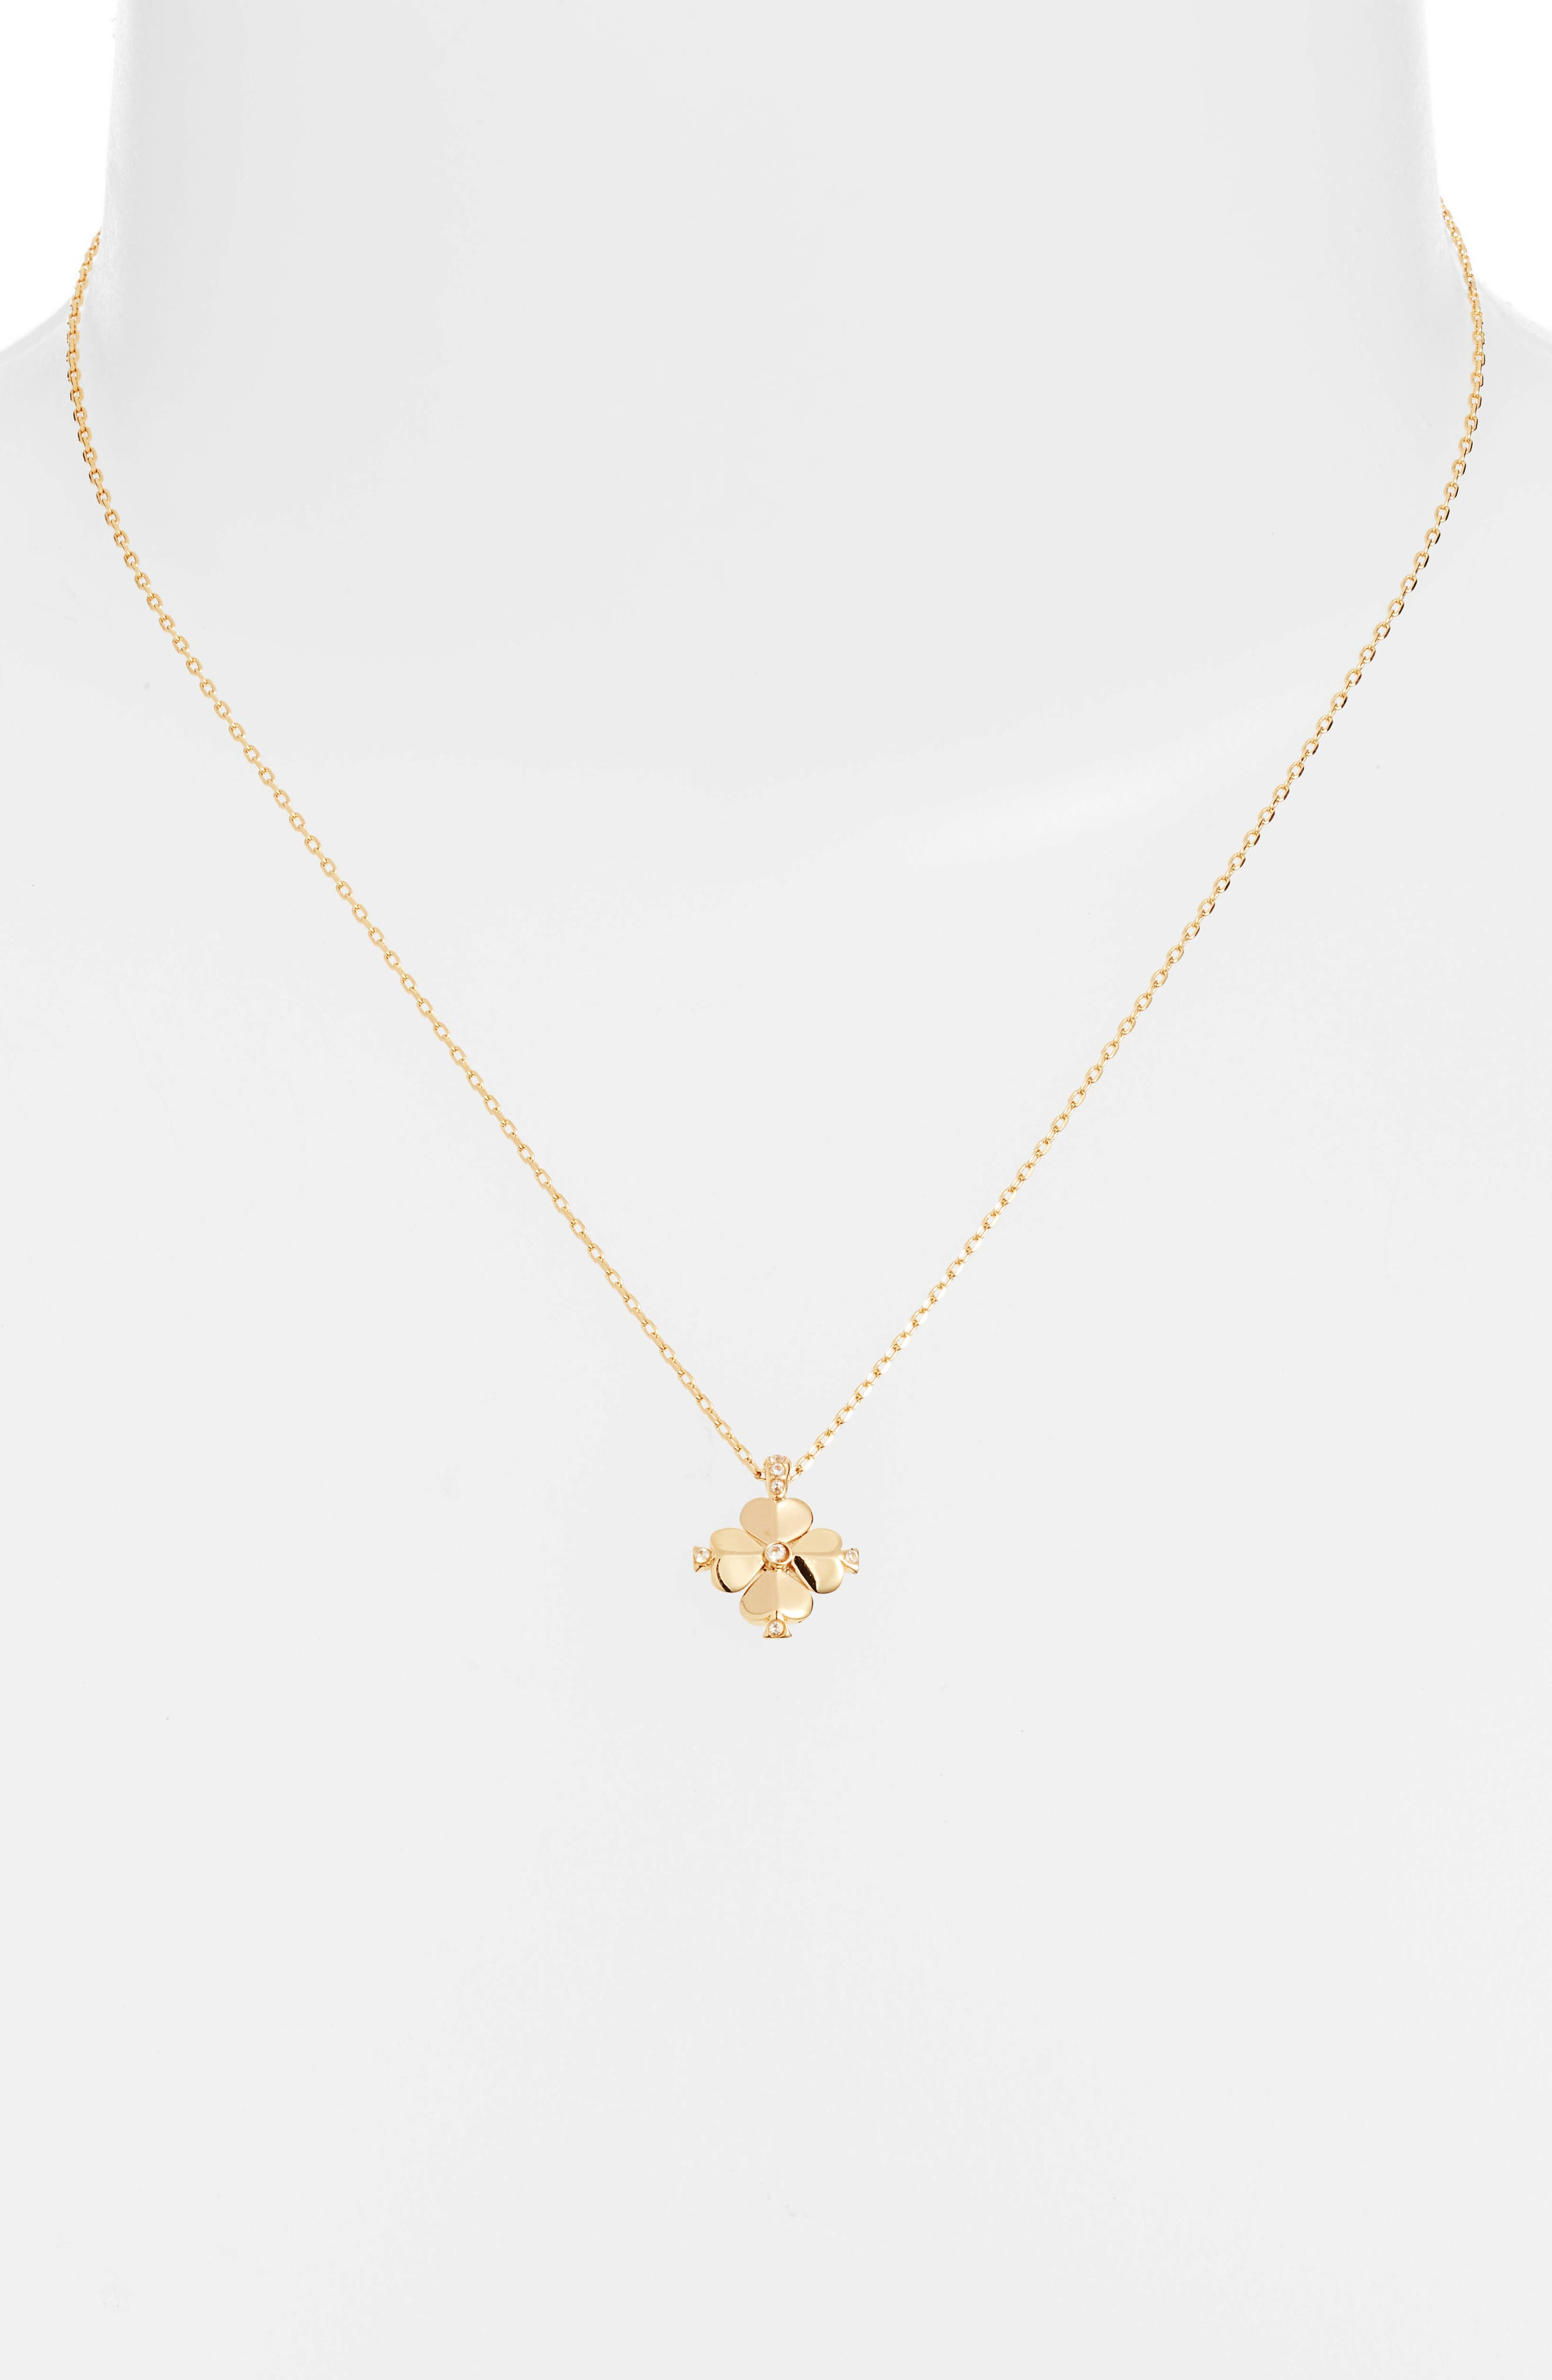 KATE SPADE NEW YORK,                             spade flower pendant necklace,                             Alternate thumbnail 2, color,                             CLEAR/ GOLD